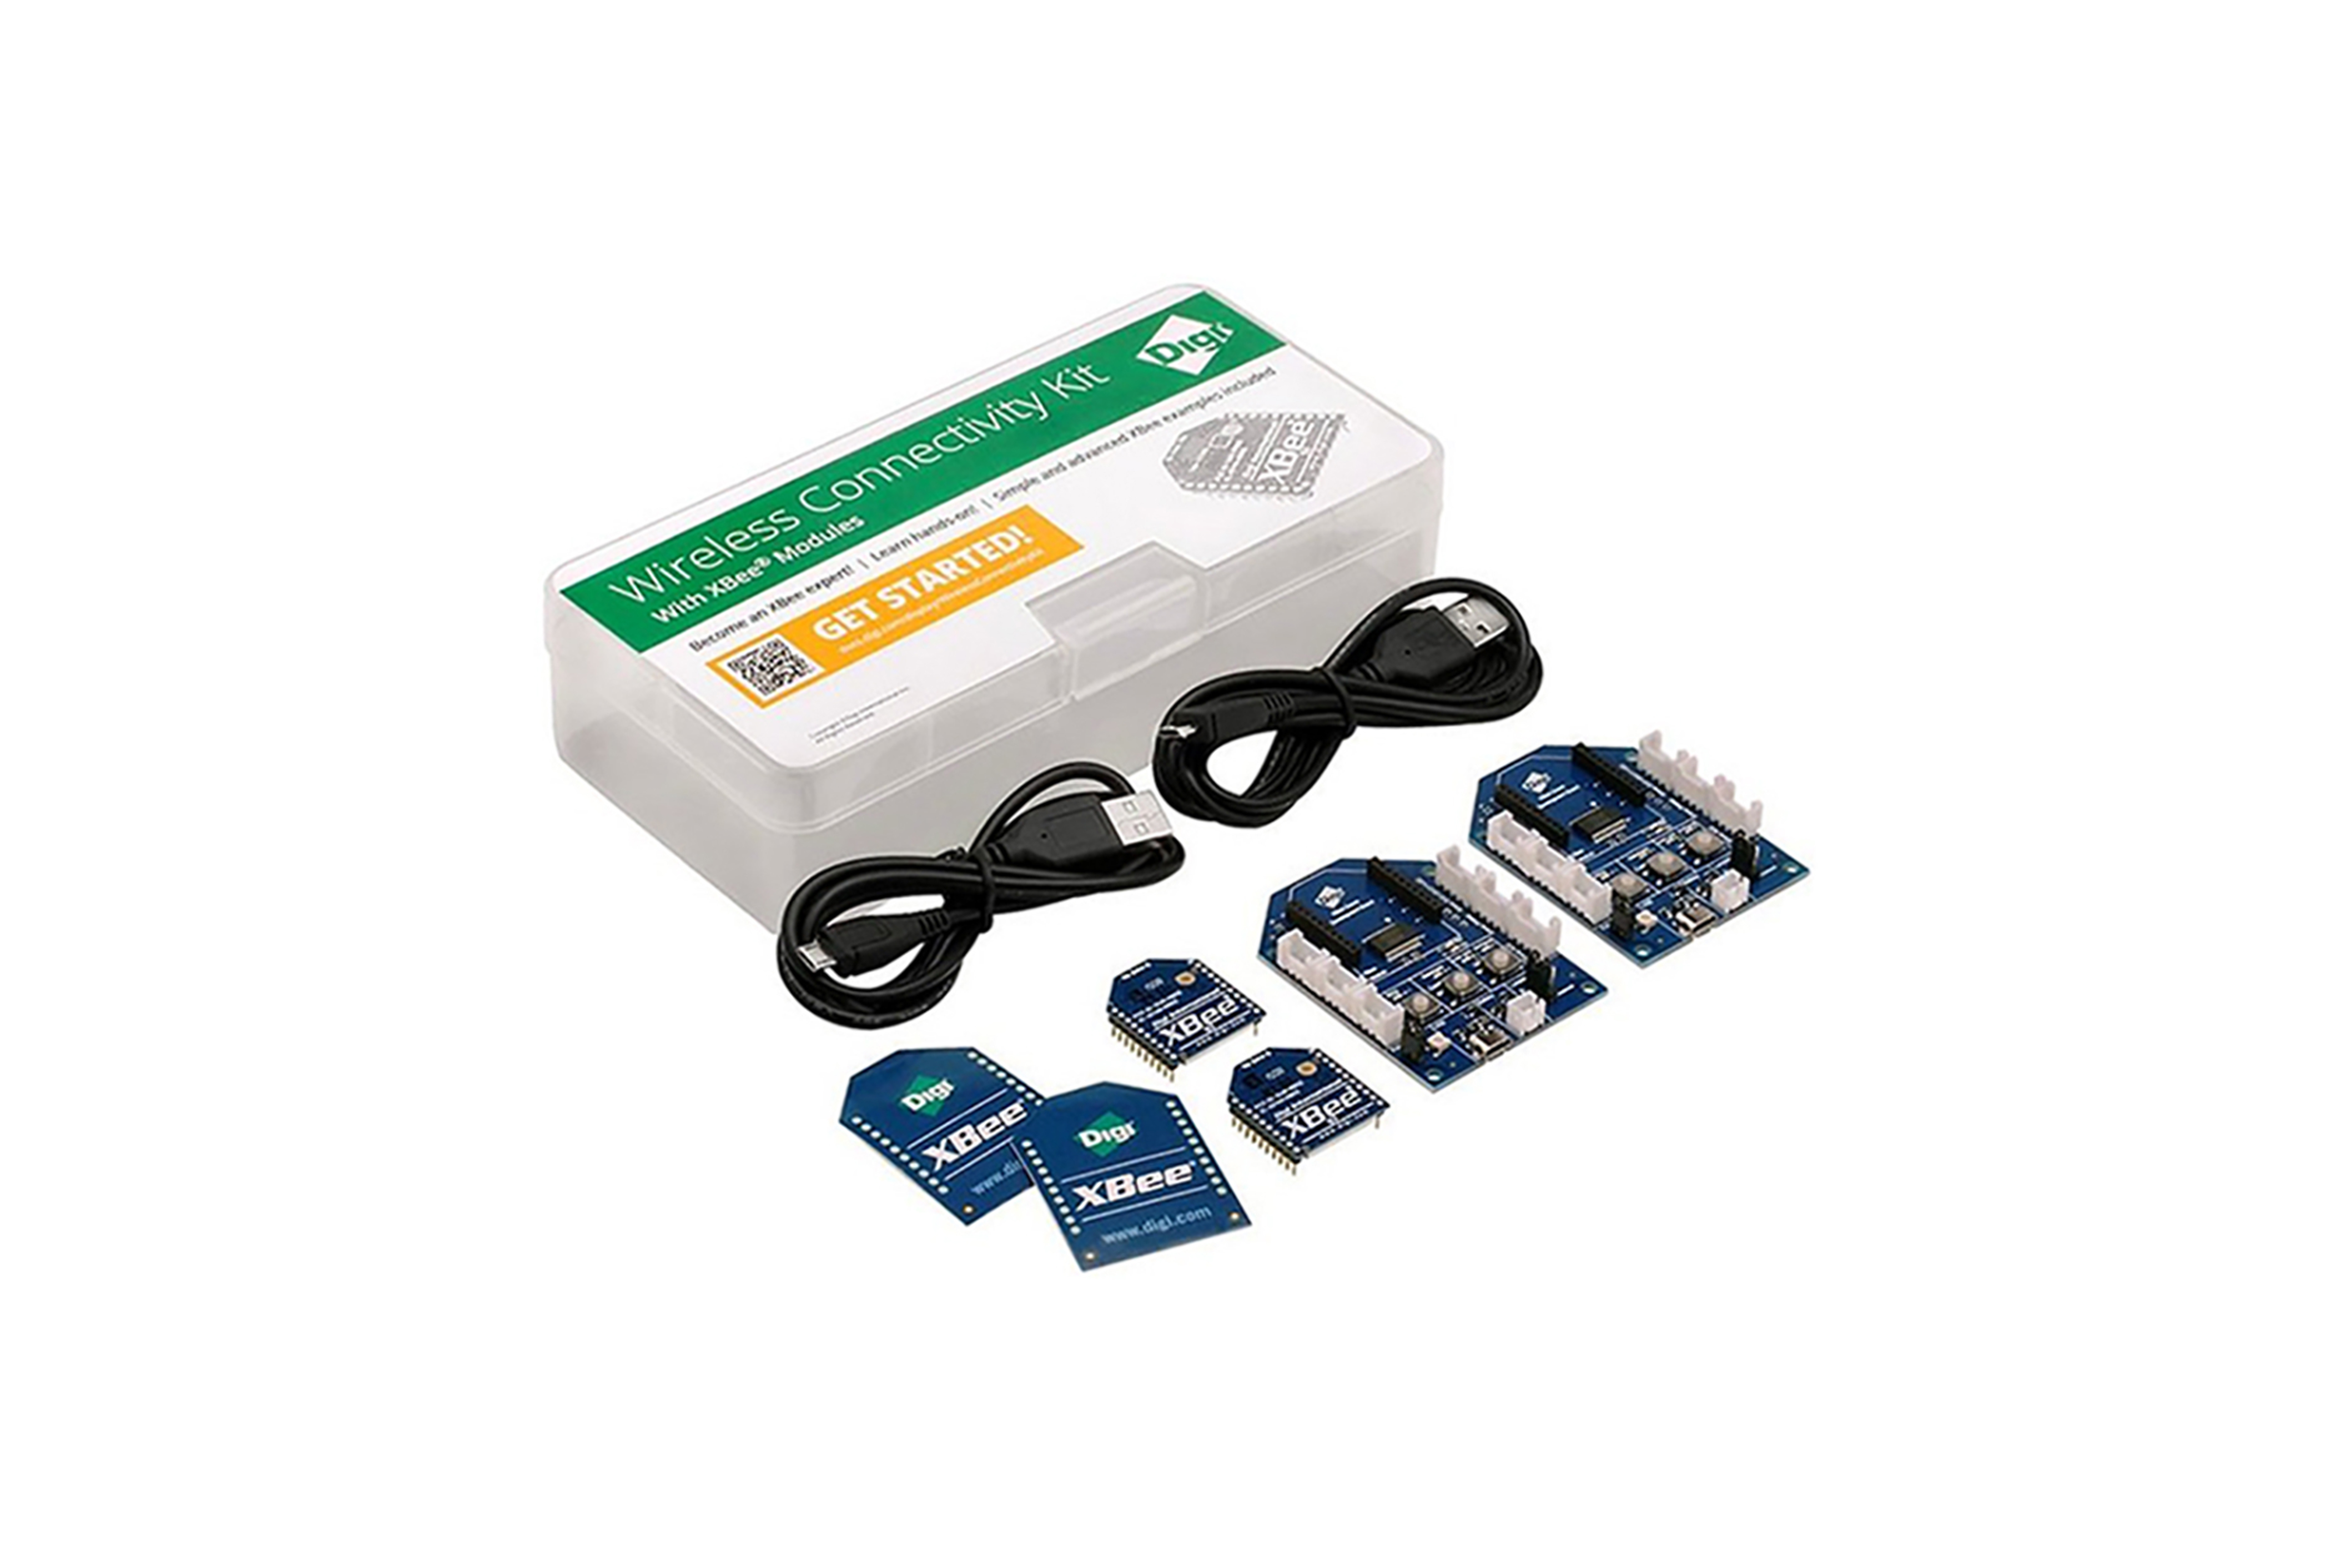 Kit di connettività wireless Xbee 802.15.4